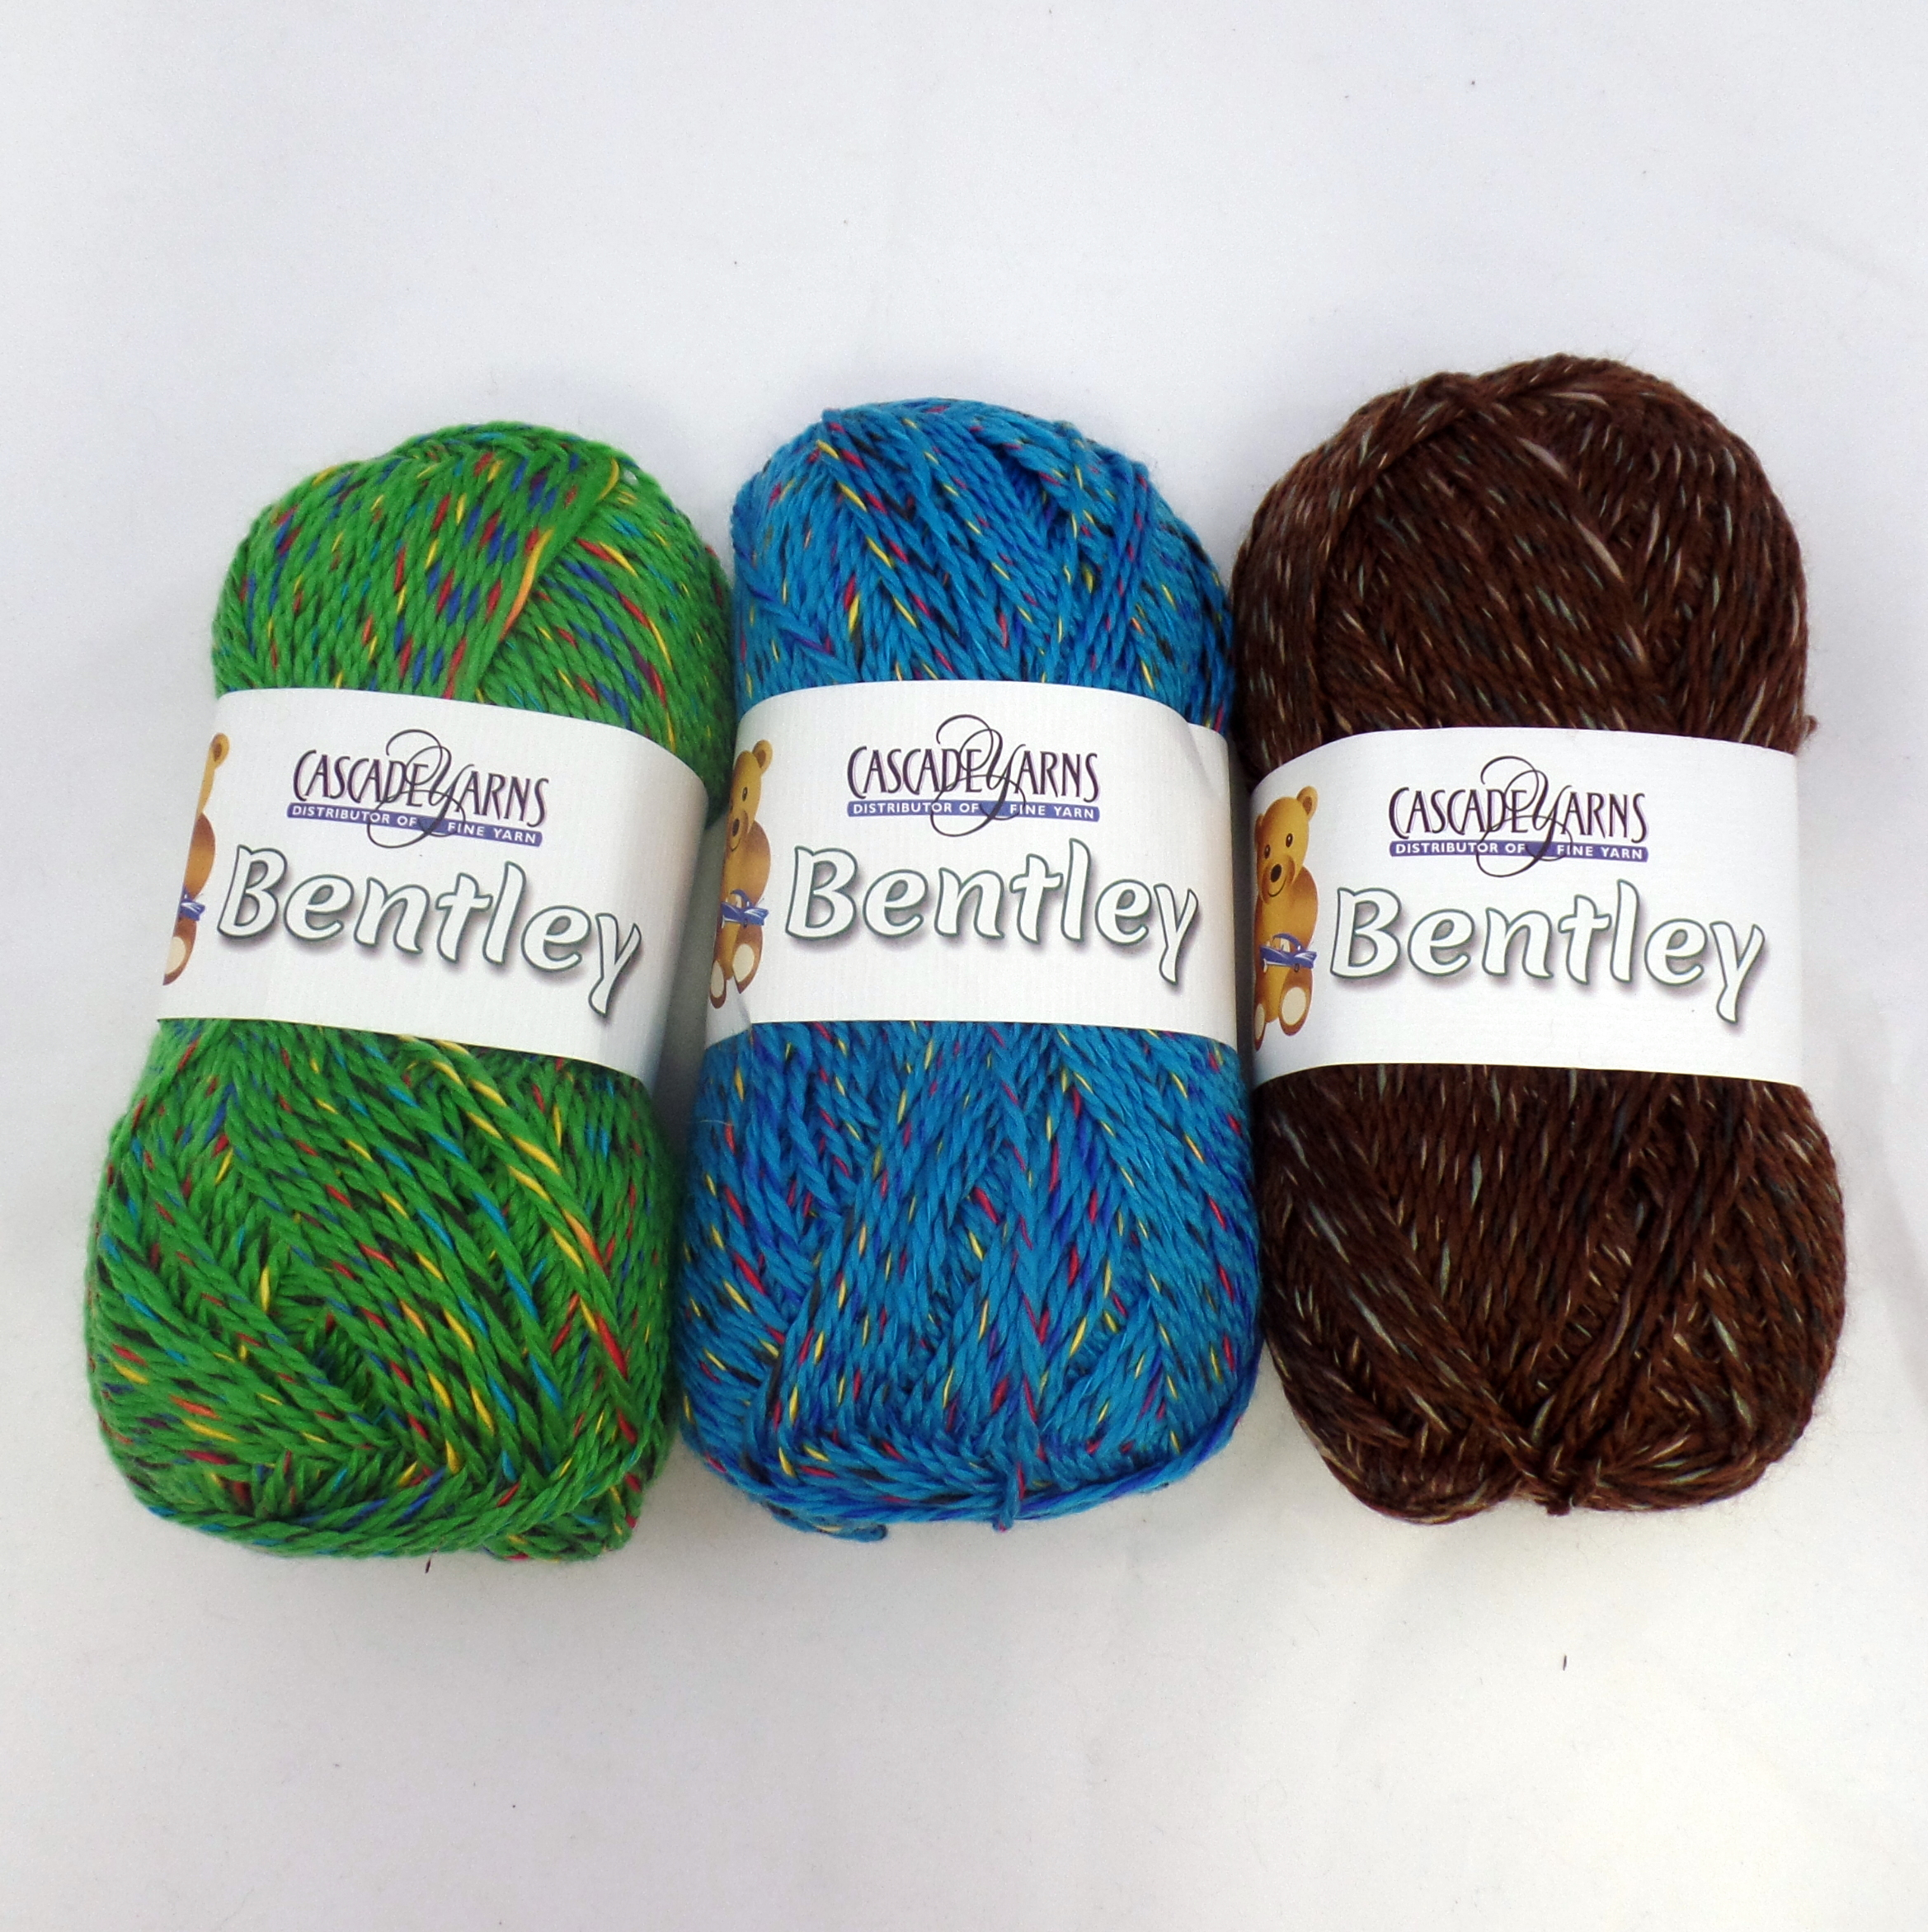 Cascade Yarn Bentley - Twisted Purl